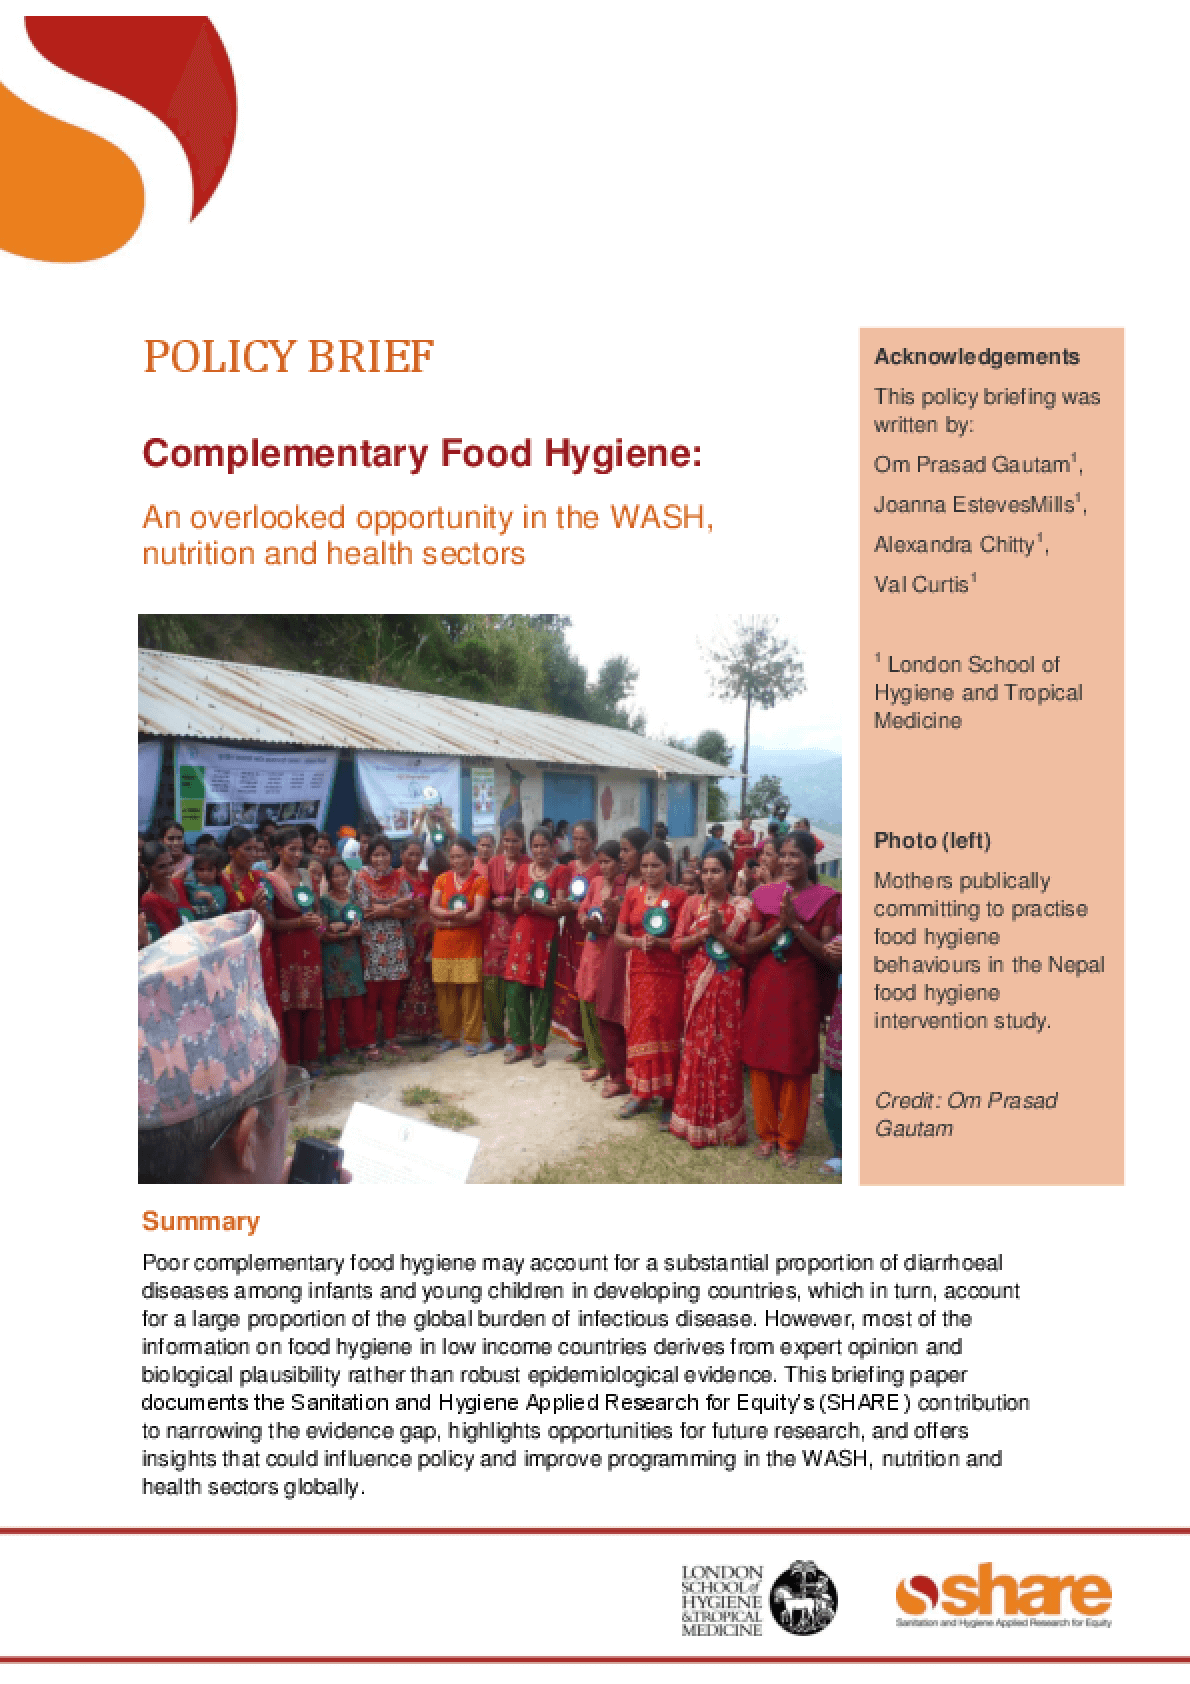 Complementary Food Hygiene: An Overlooked Opportunity in the WASH, Nutrition and Health Sectors